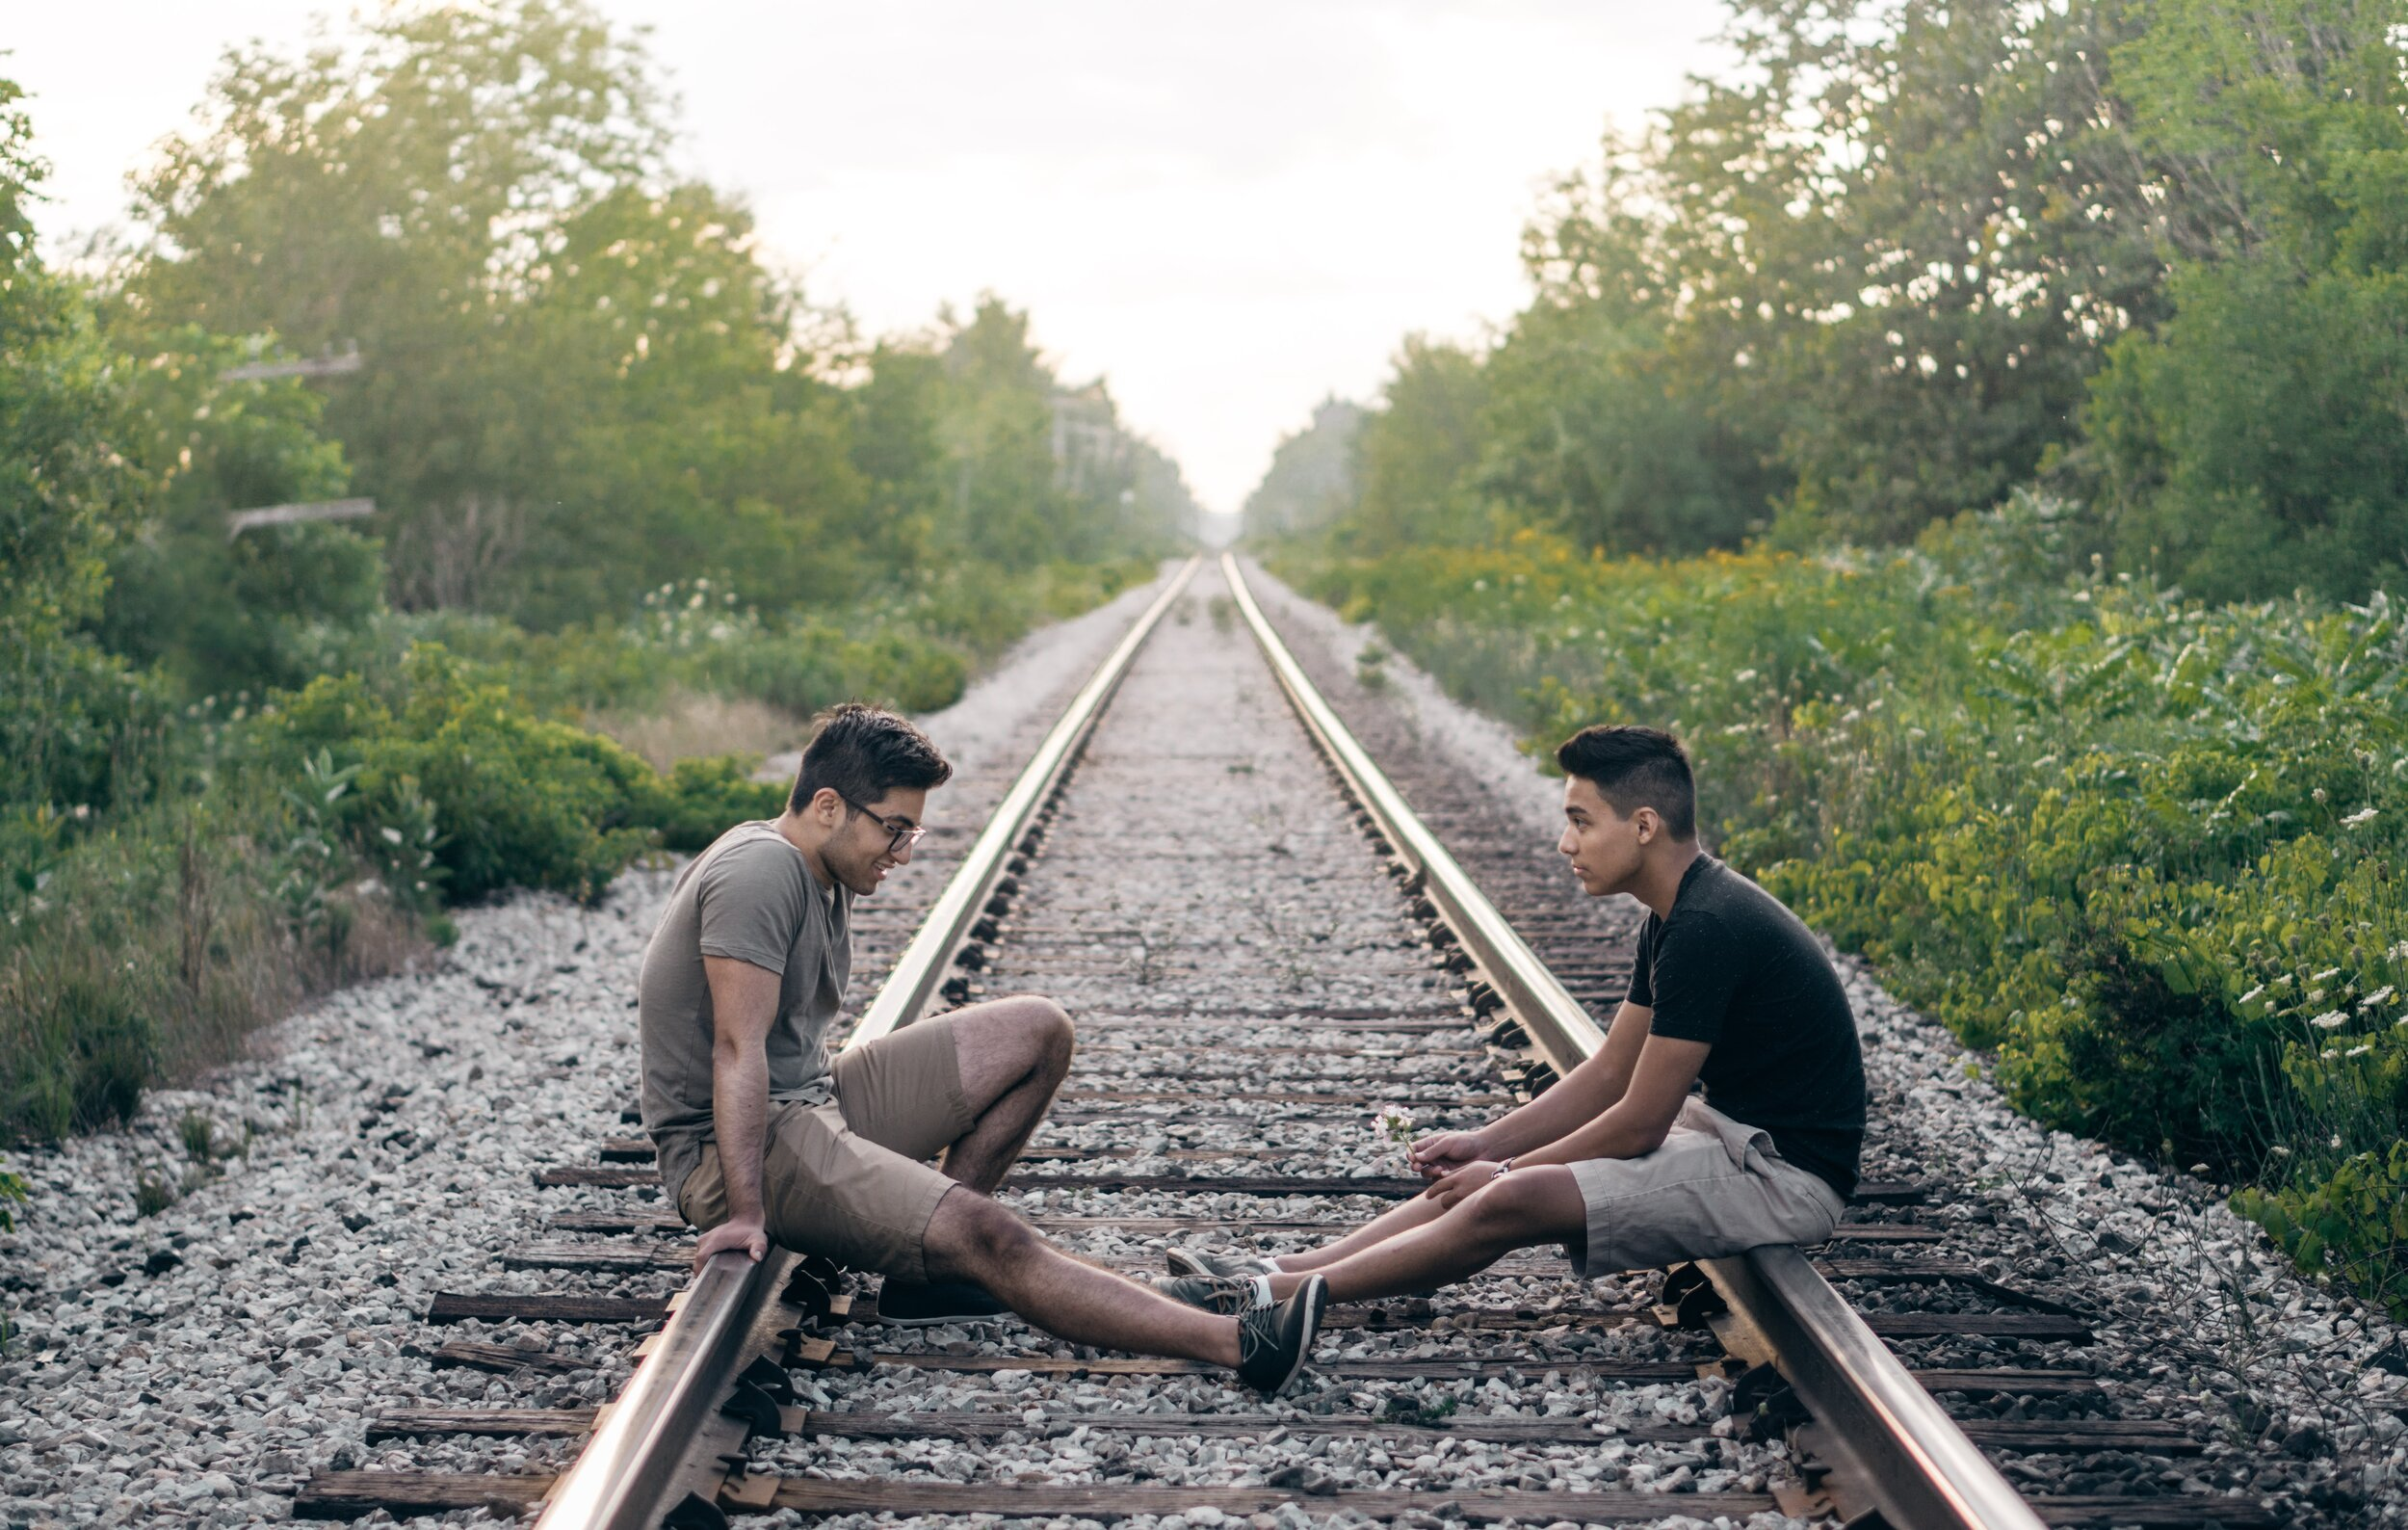 two young men sitting on train tracks having a conversation about mental health and issues